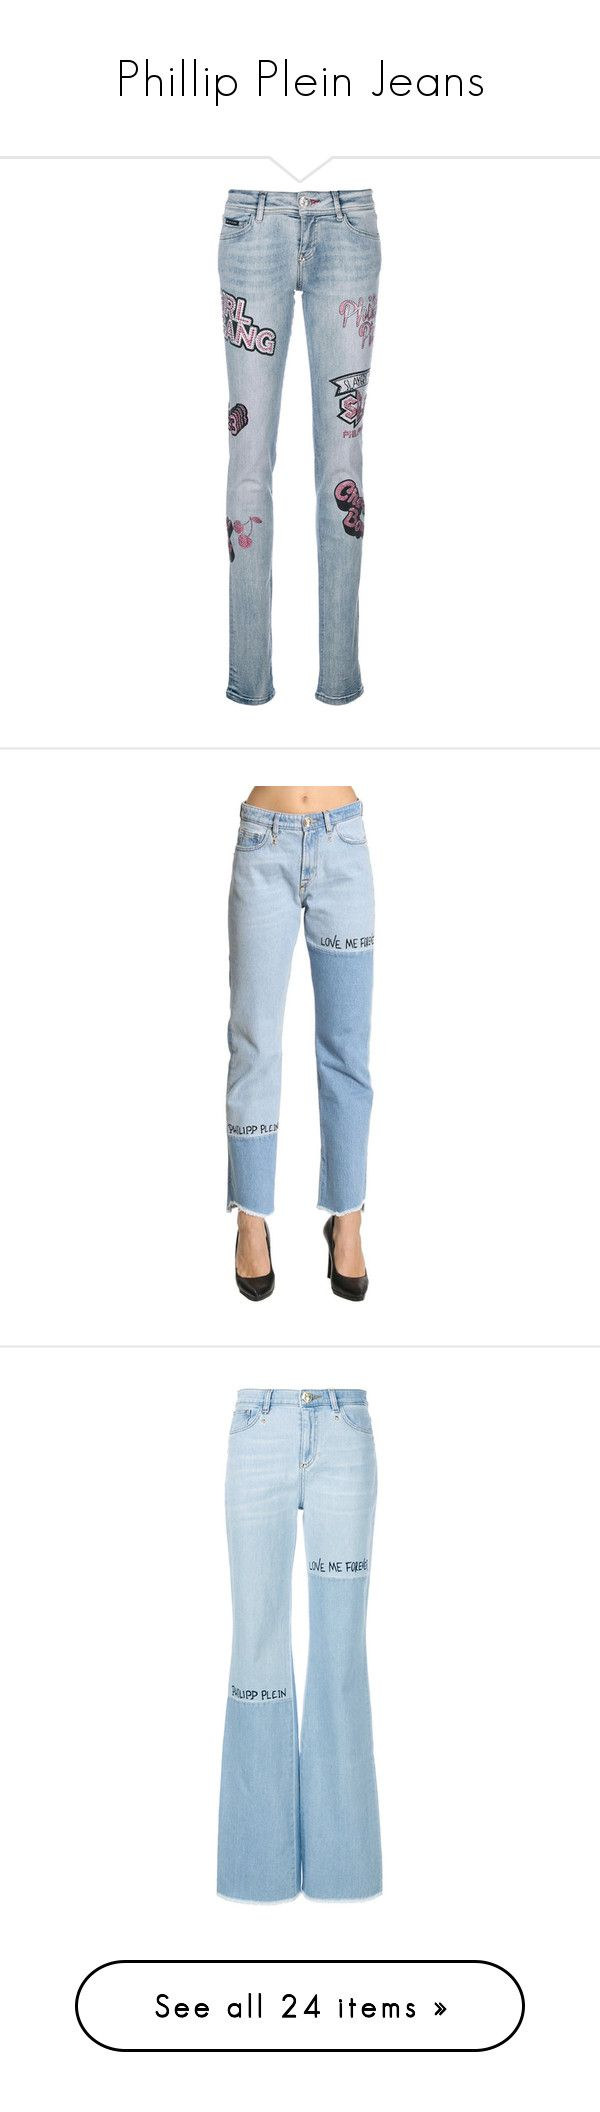 """Phillip Plein Jeans"" by willa-vanilla ❤ liked on Polyvore featuring jeans, blue, blue jeans, zip fly jeans, low rise jeans, long length jeans, philipp plein, stone washed, stone washed jeans and stonewash jeans"